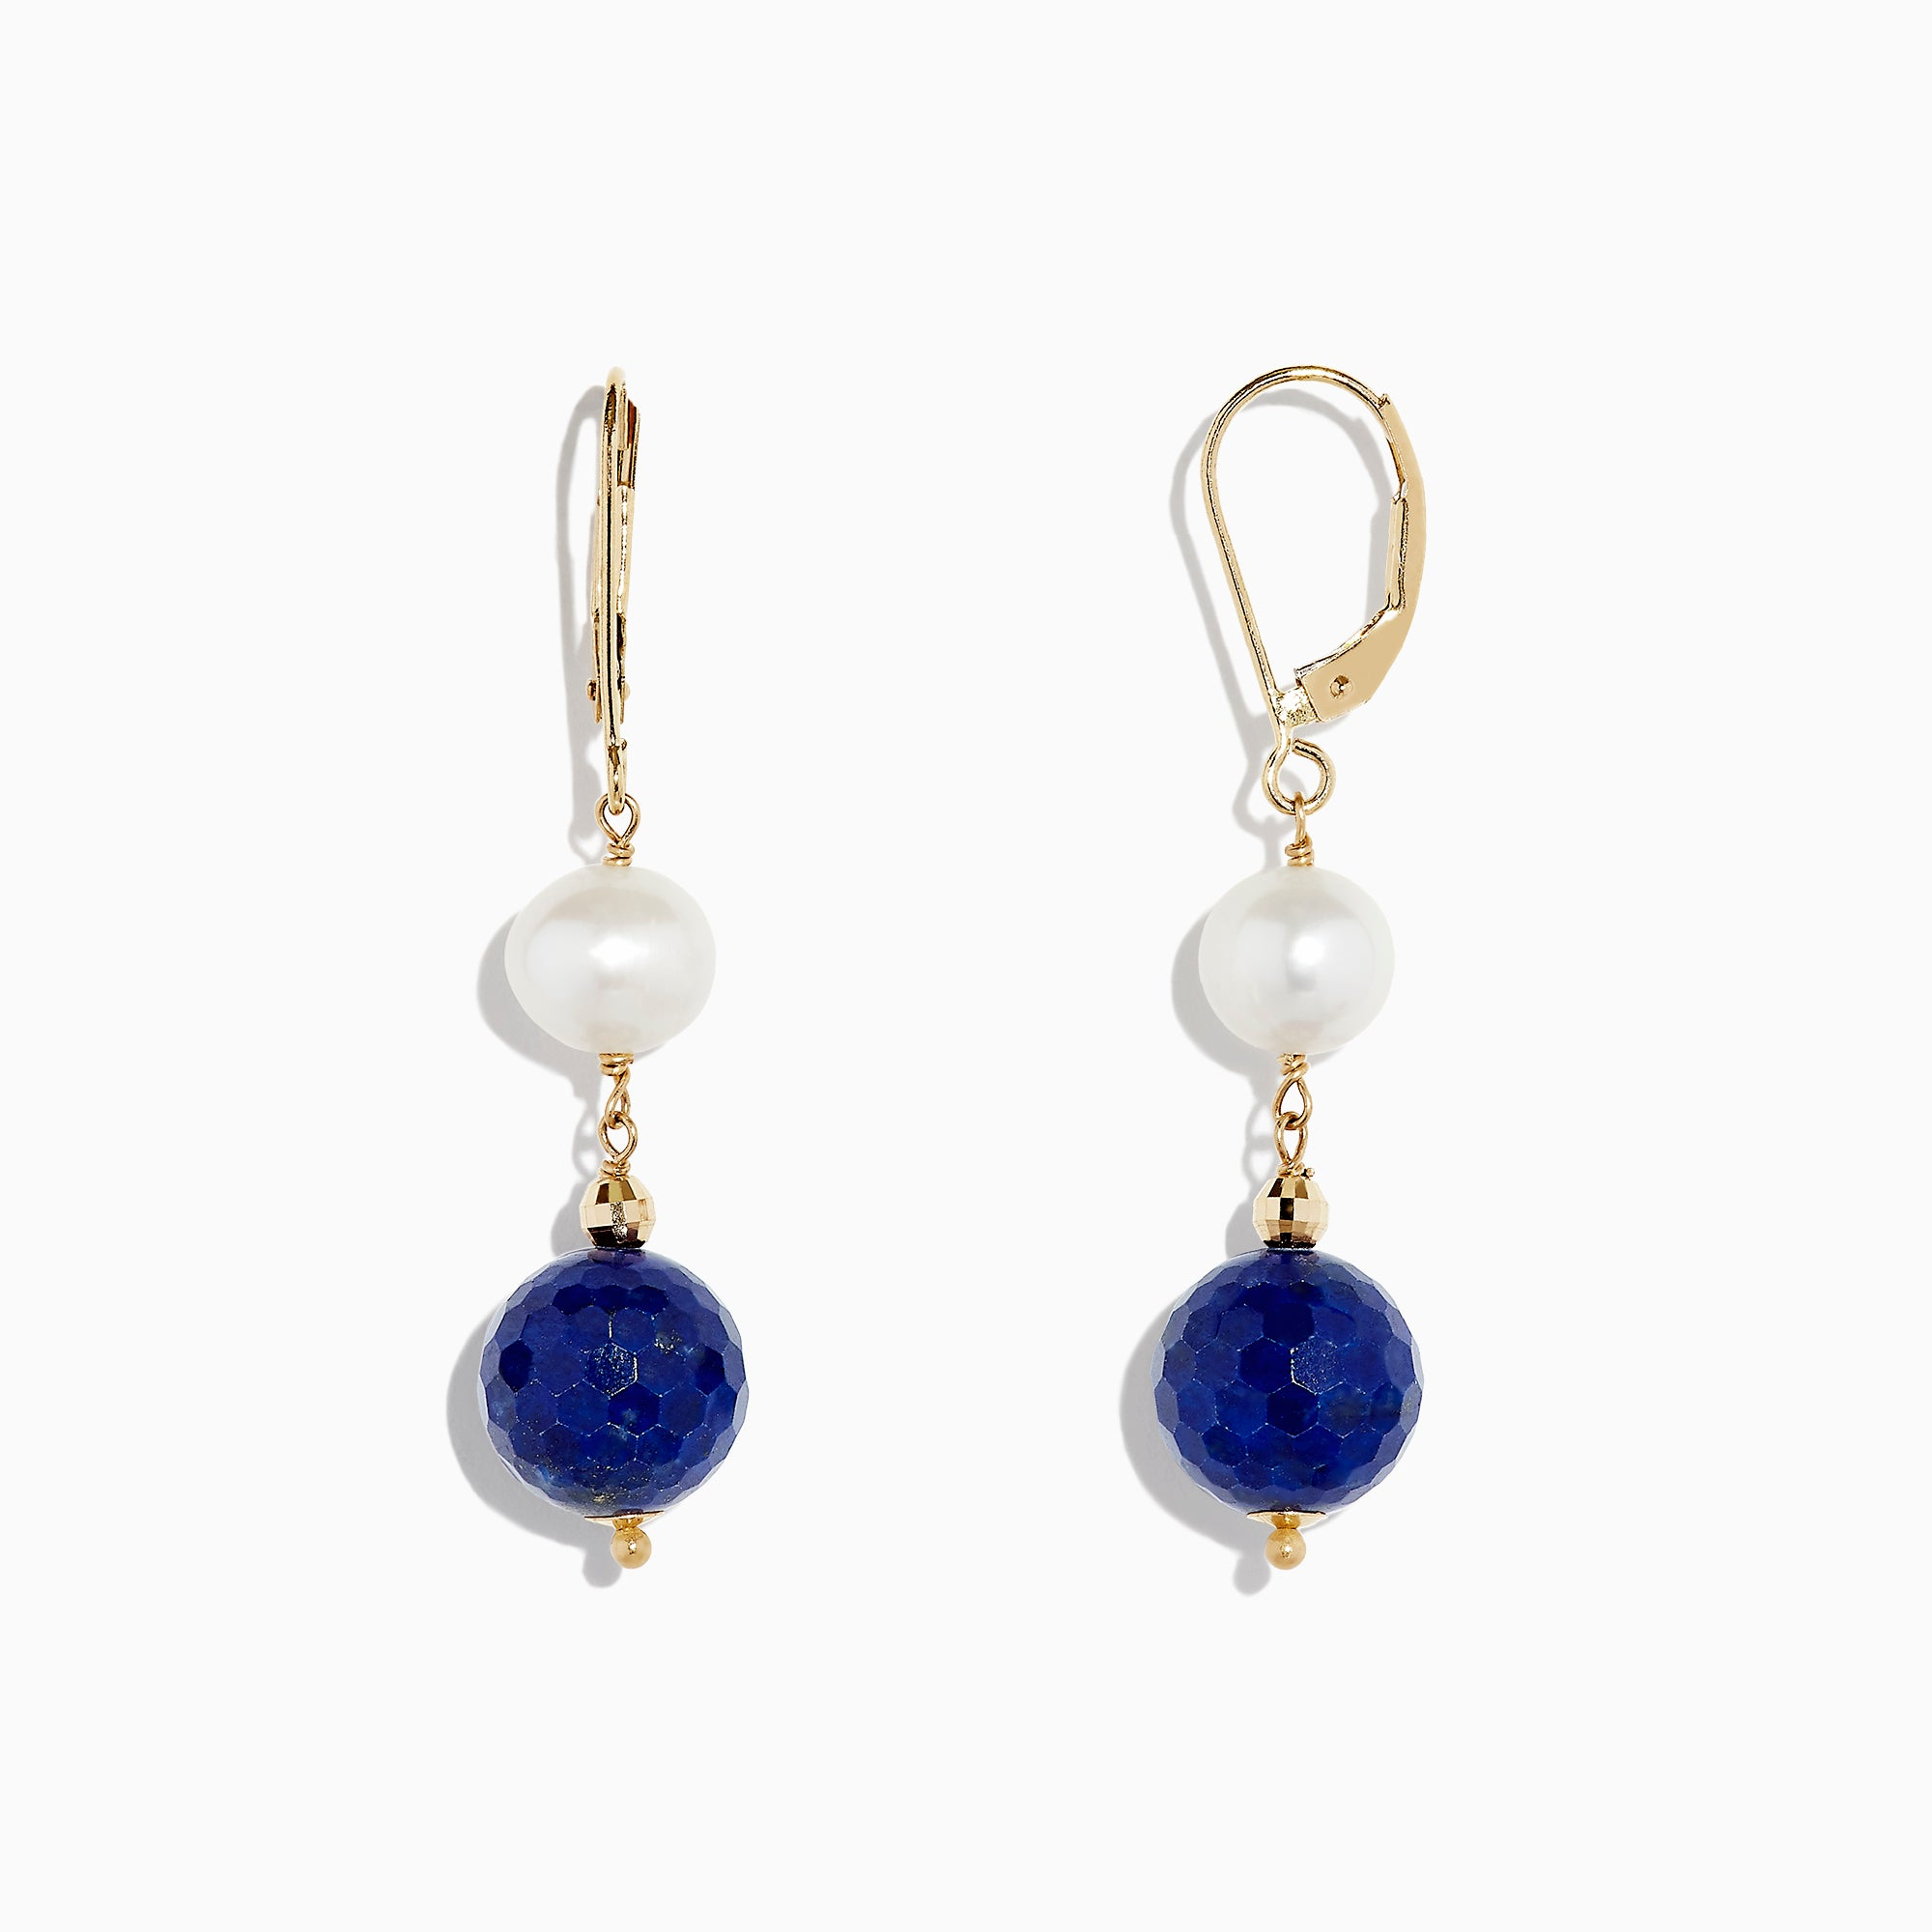 Effy 14K Yellow Gold Lapis Lazuli & Cultured Fresh Water Pearl Drop Earrings, 1.50 TCW